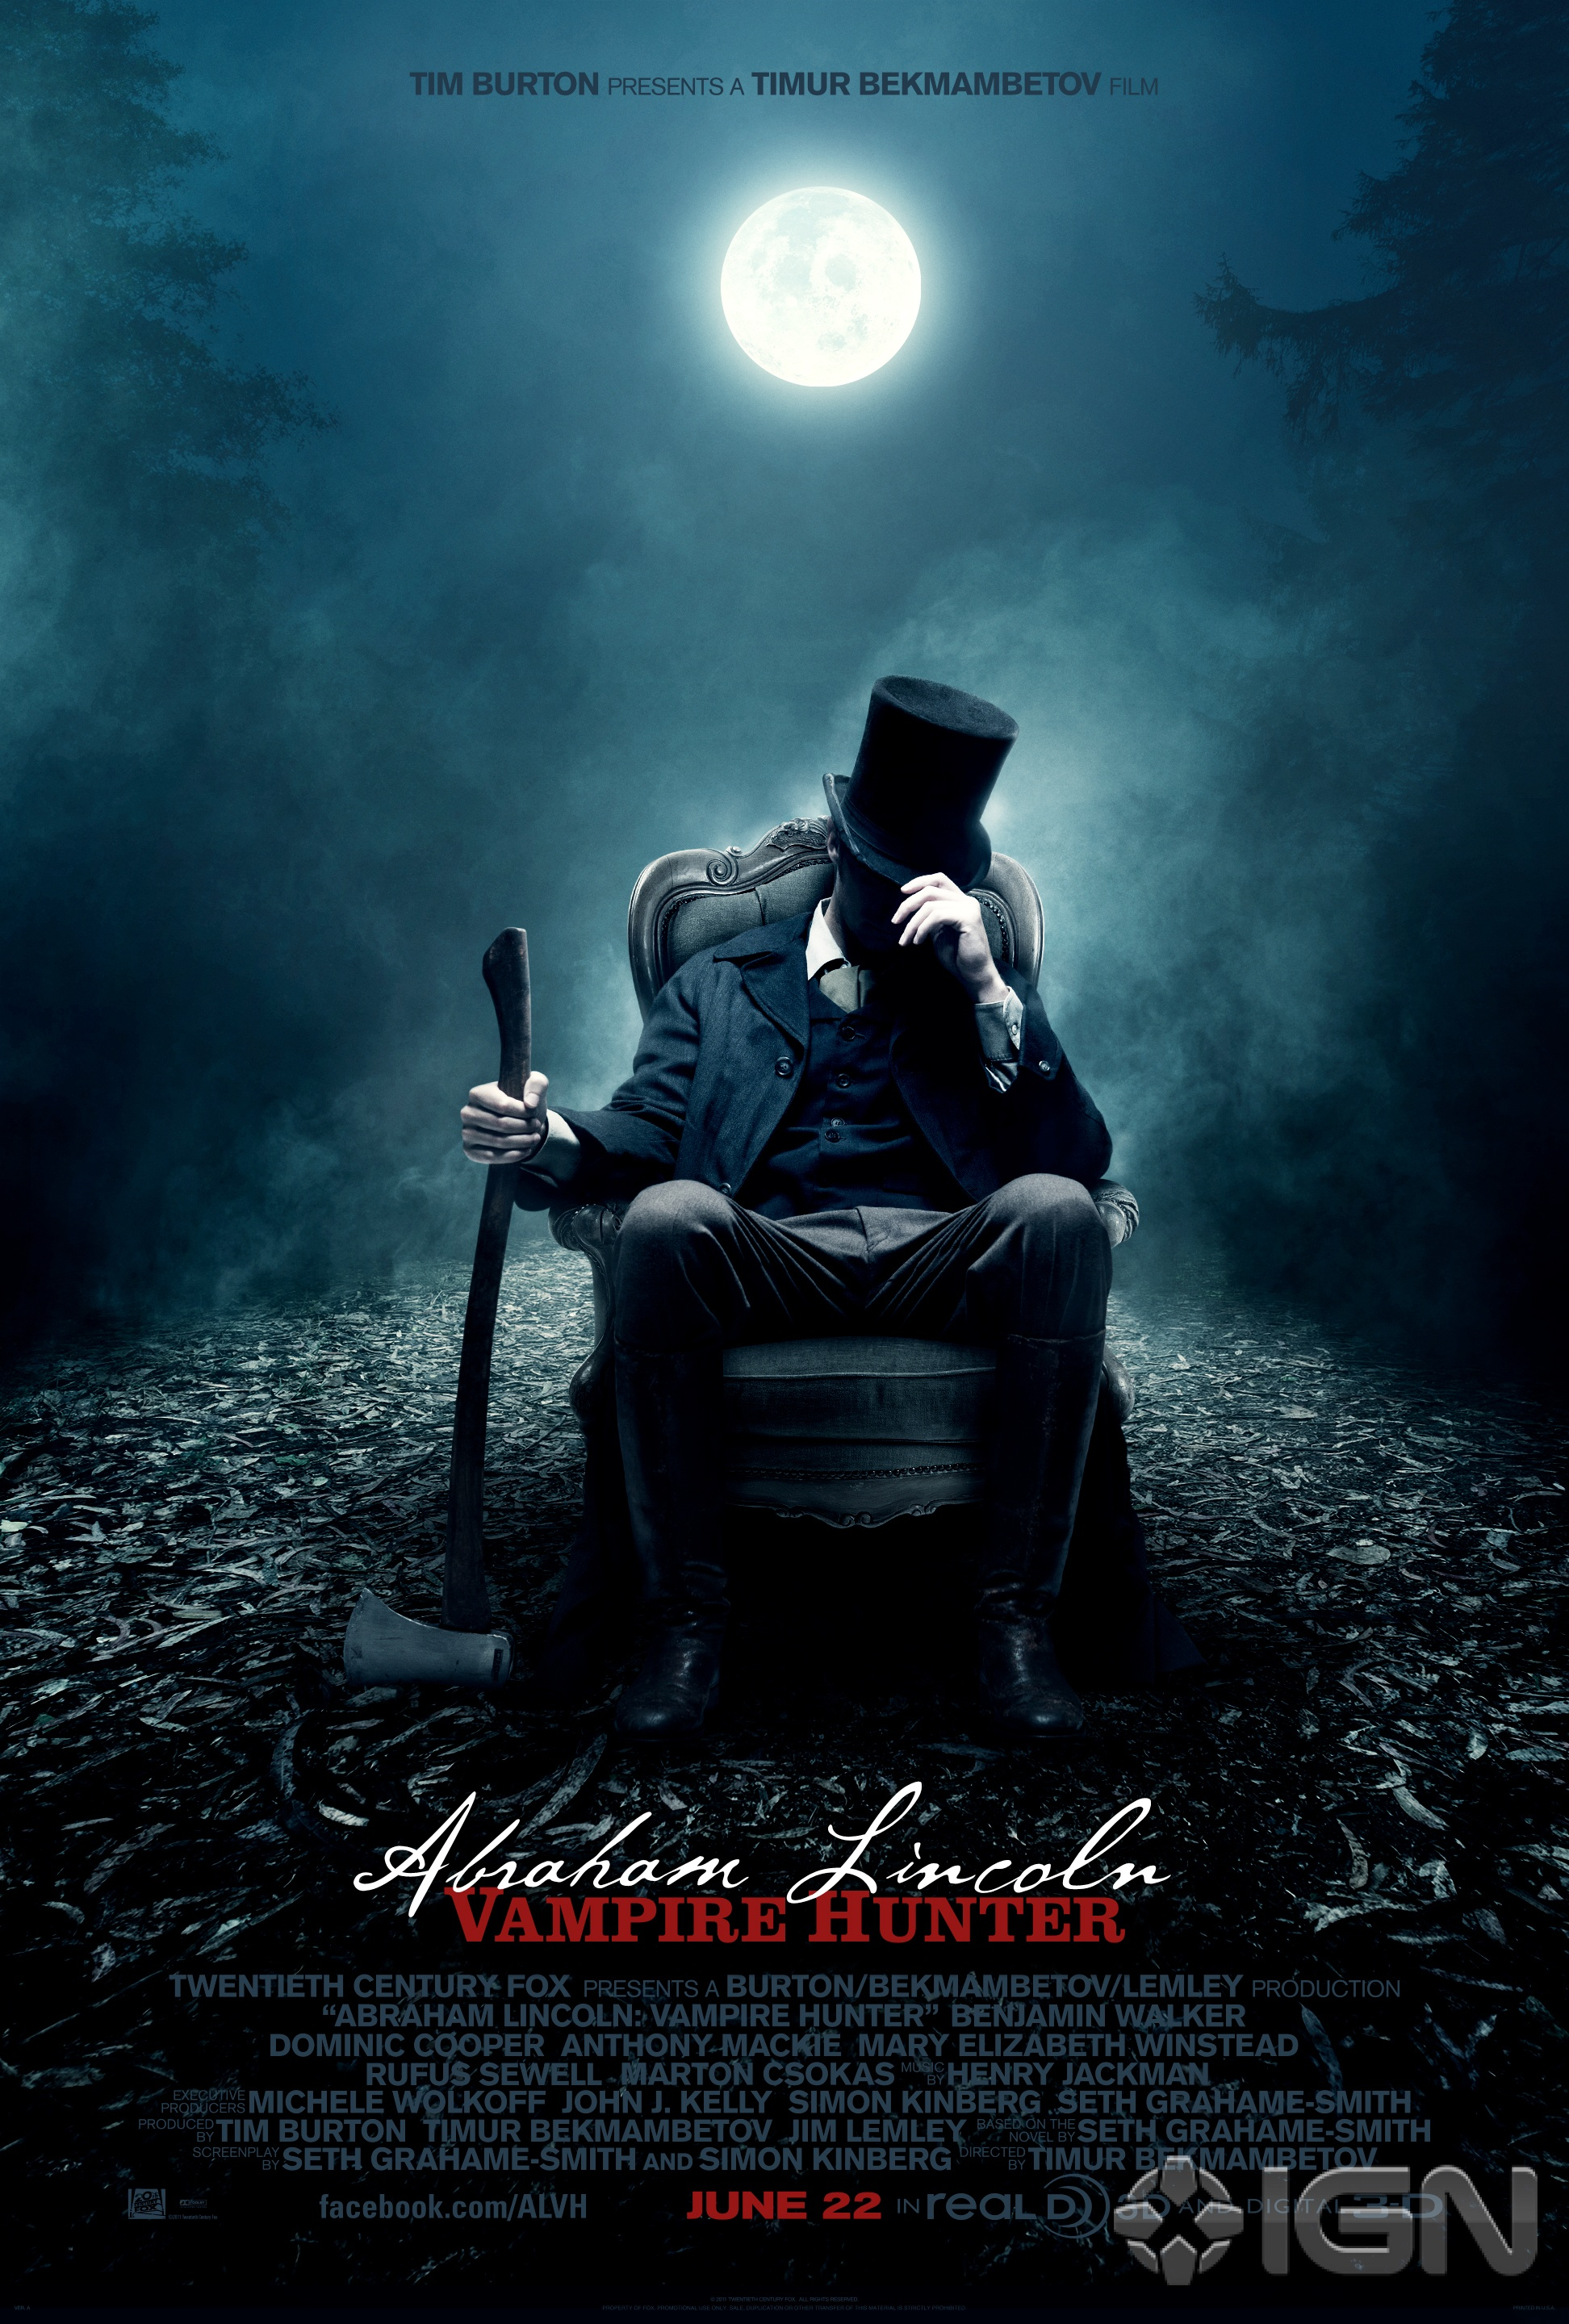 http://popcorngirls.files.wordpress.com/2011/12/abraham-lincoln-vampire-hunter-movie-poster-lenticular-teaser-night.jpg